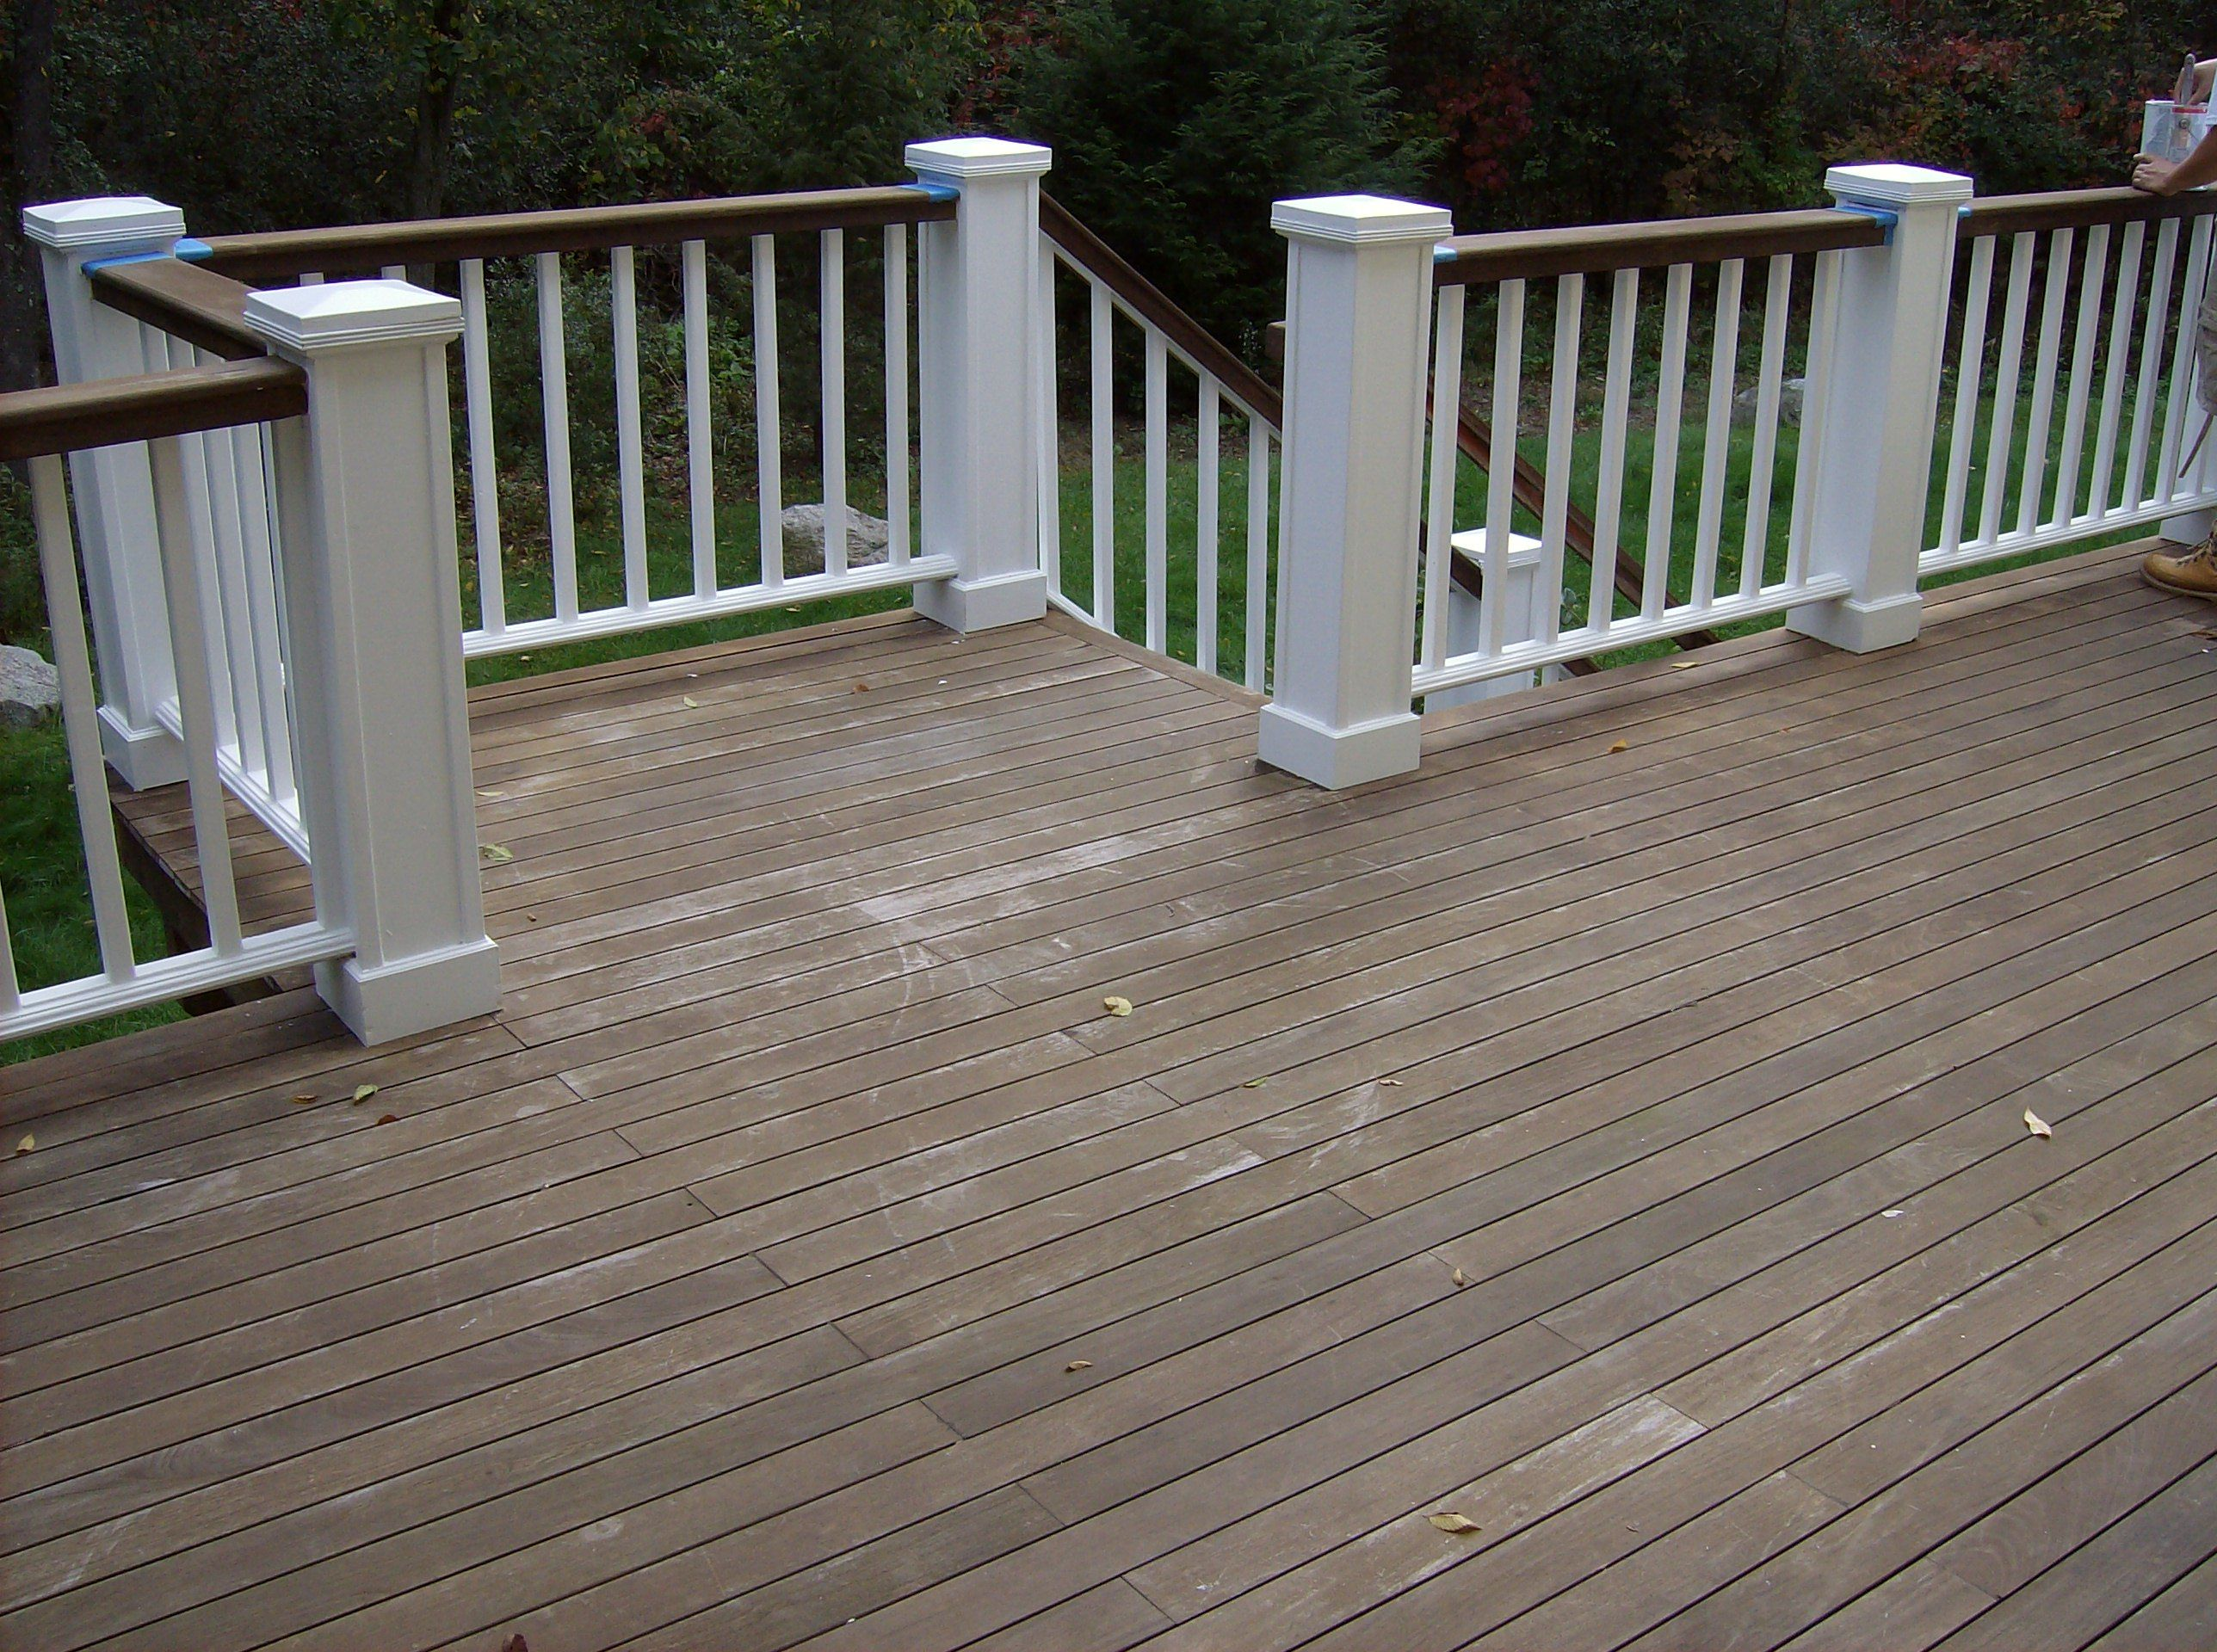 Pin By Neely Hughey On The Keys To My Castle Railings Outdoor Deck Paint Deck Railings